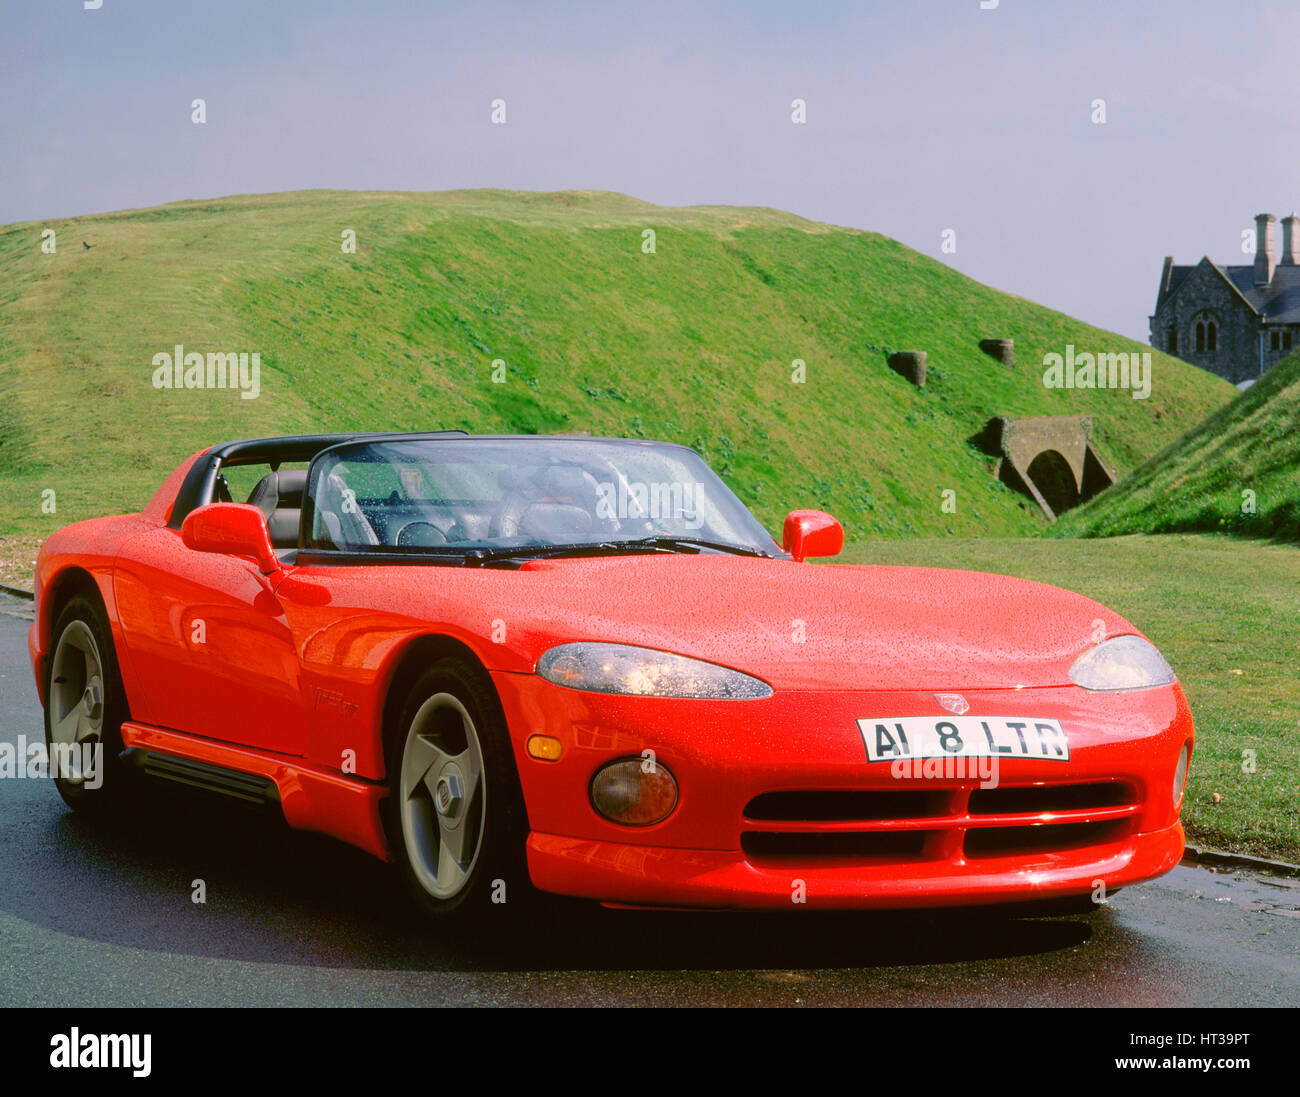 1993 Dodge Viper. Artist: Unknown. - Stock Image